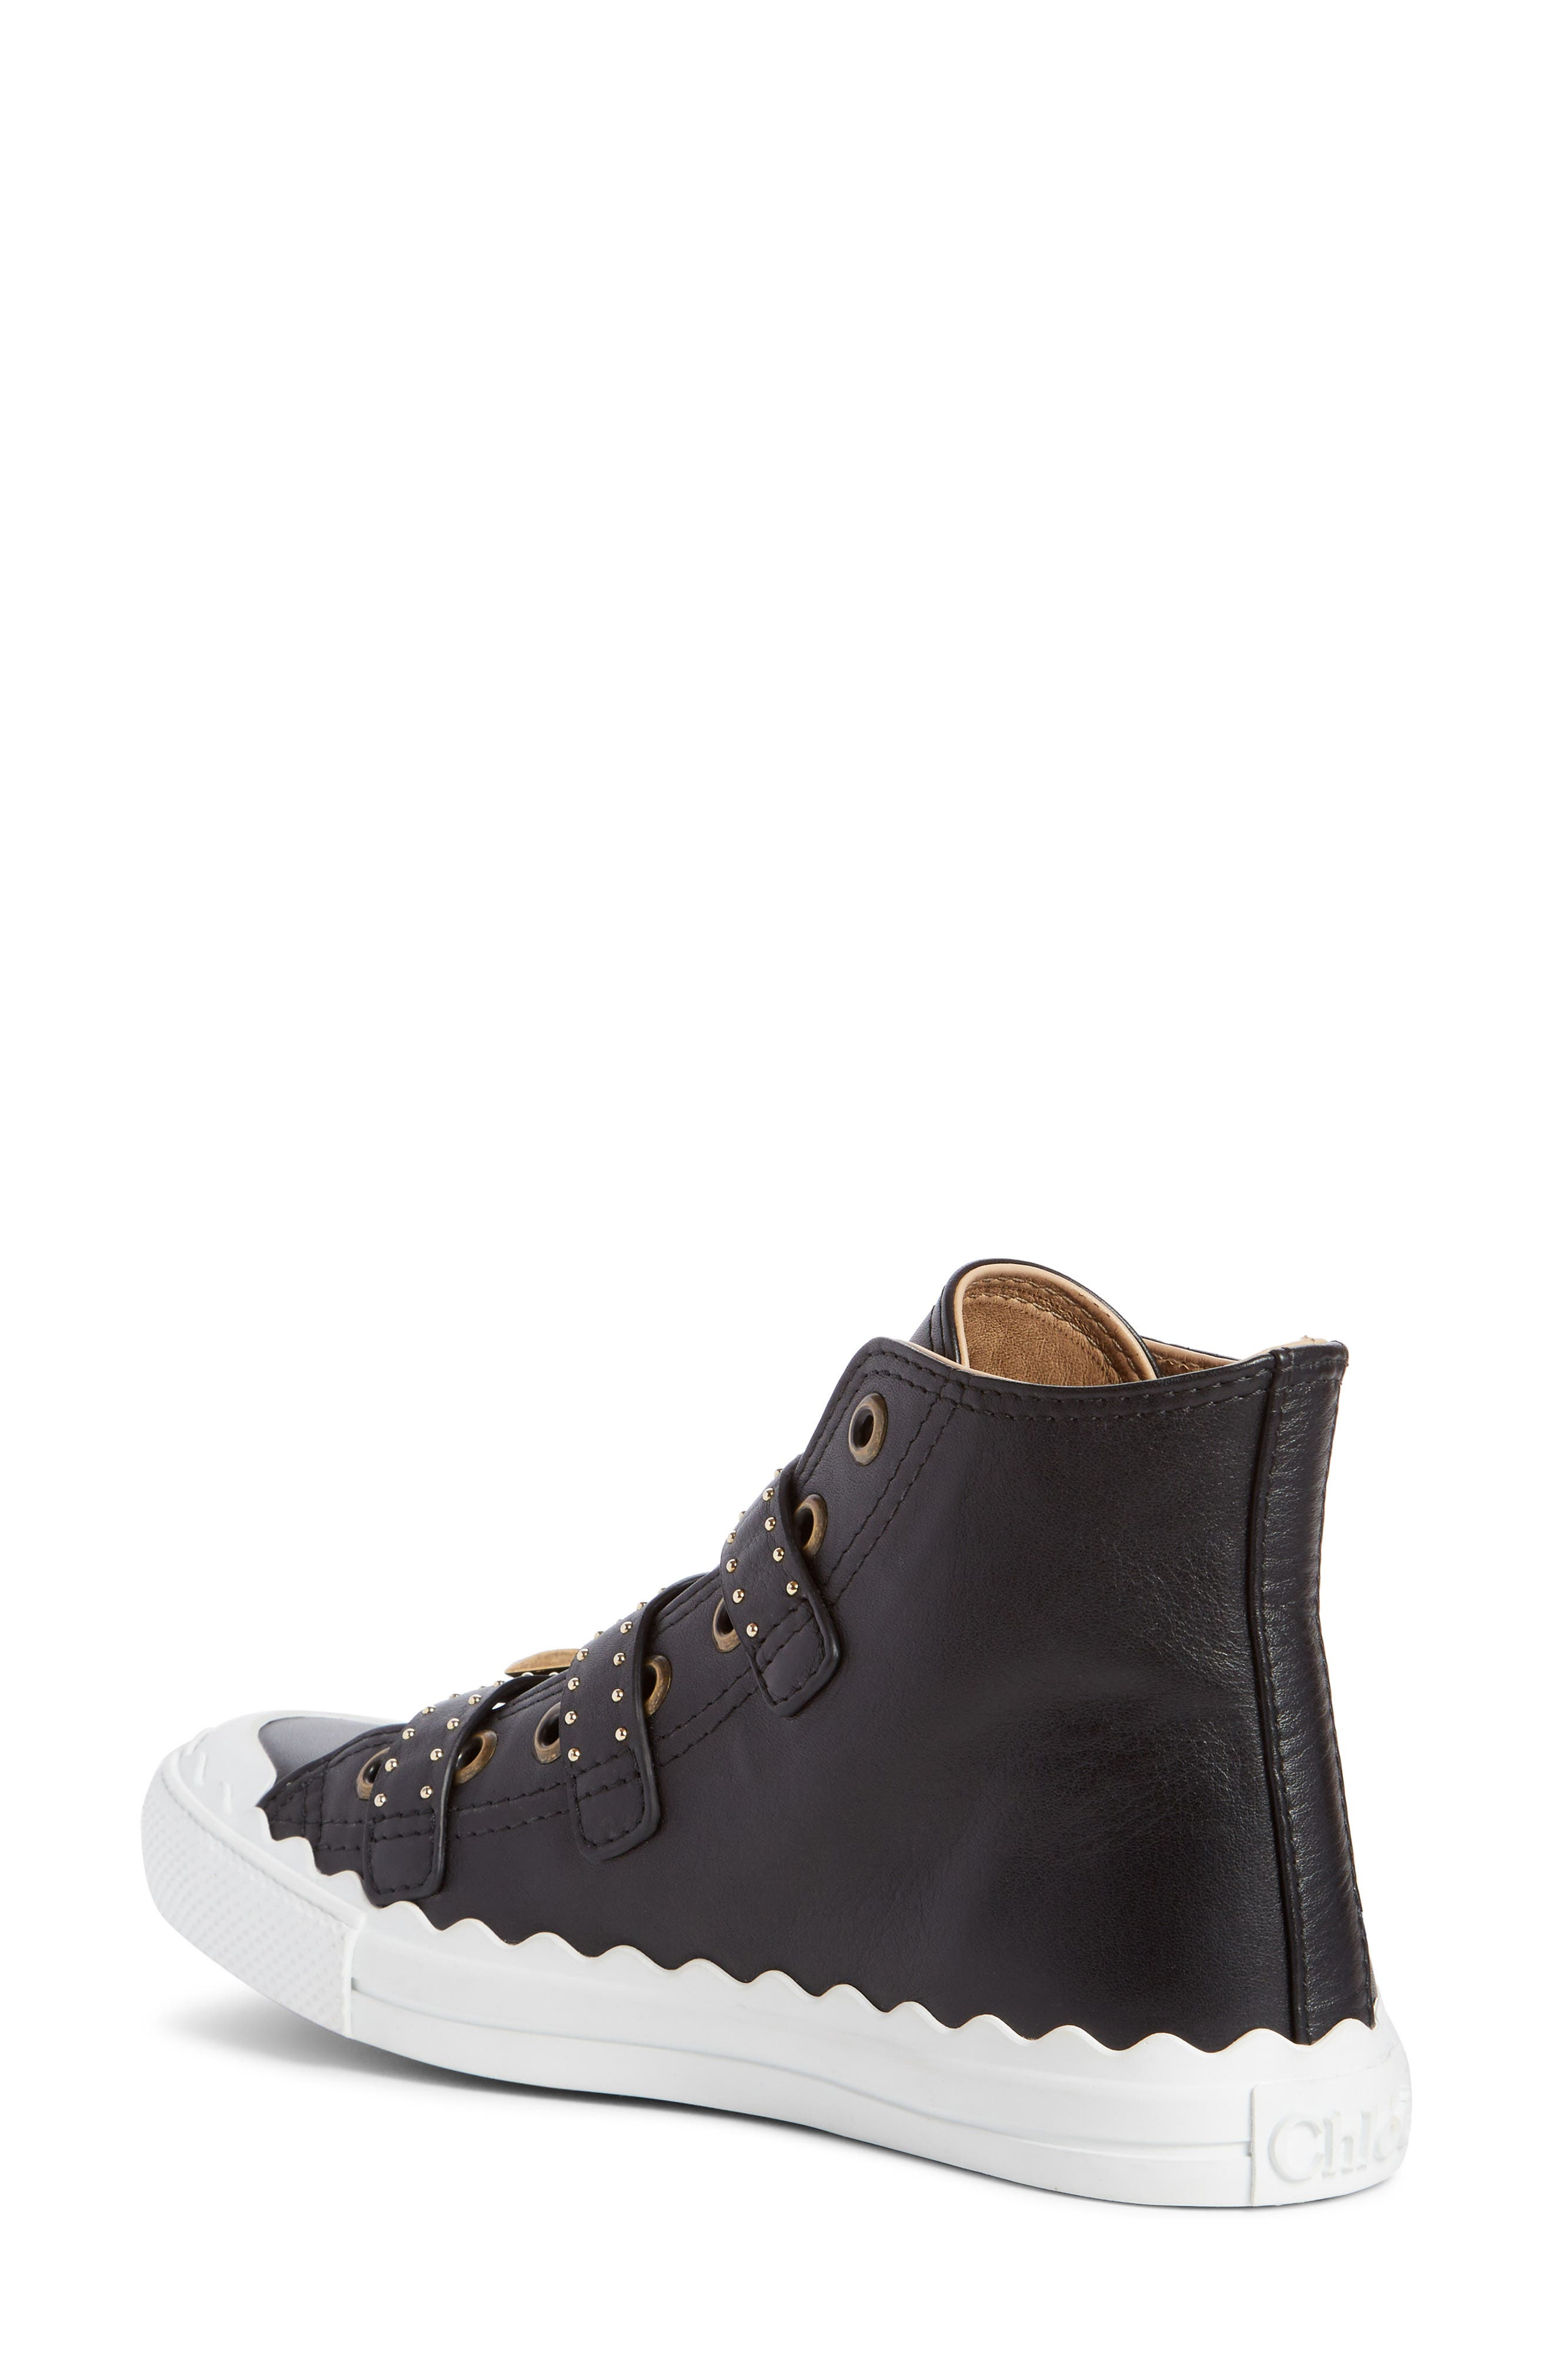 Kyle Stud Buckle High Top Sneaker,                             Alternate thumbnail 2, color,                             Black/ Gold